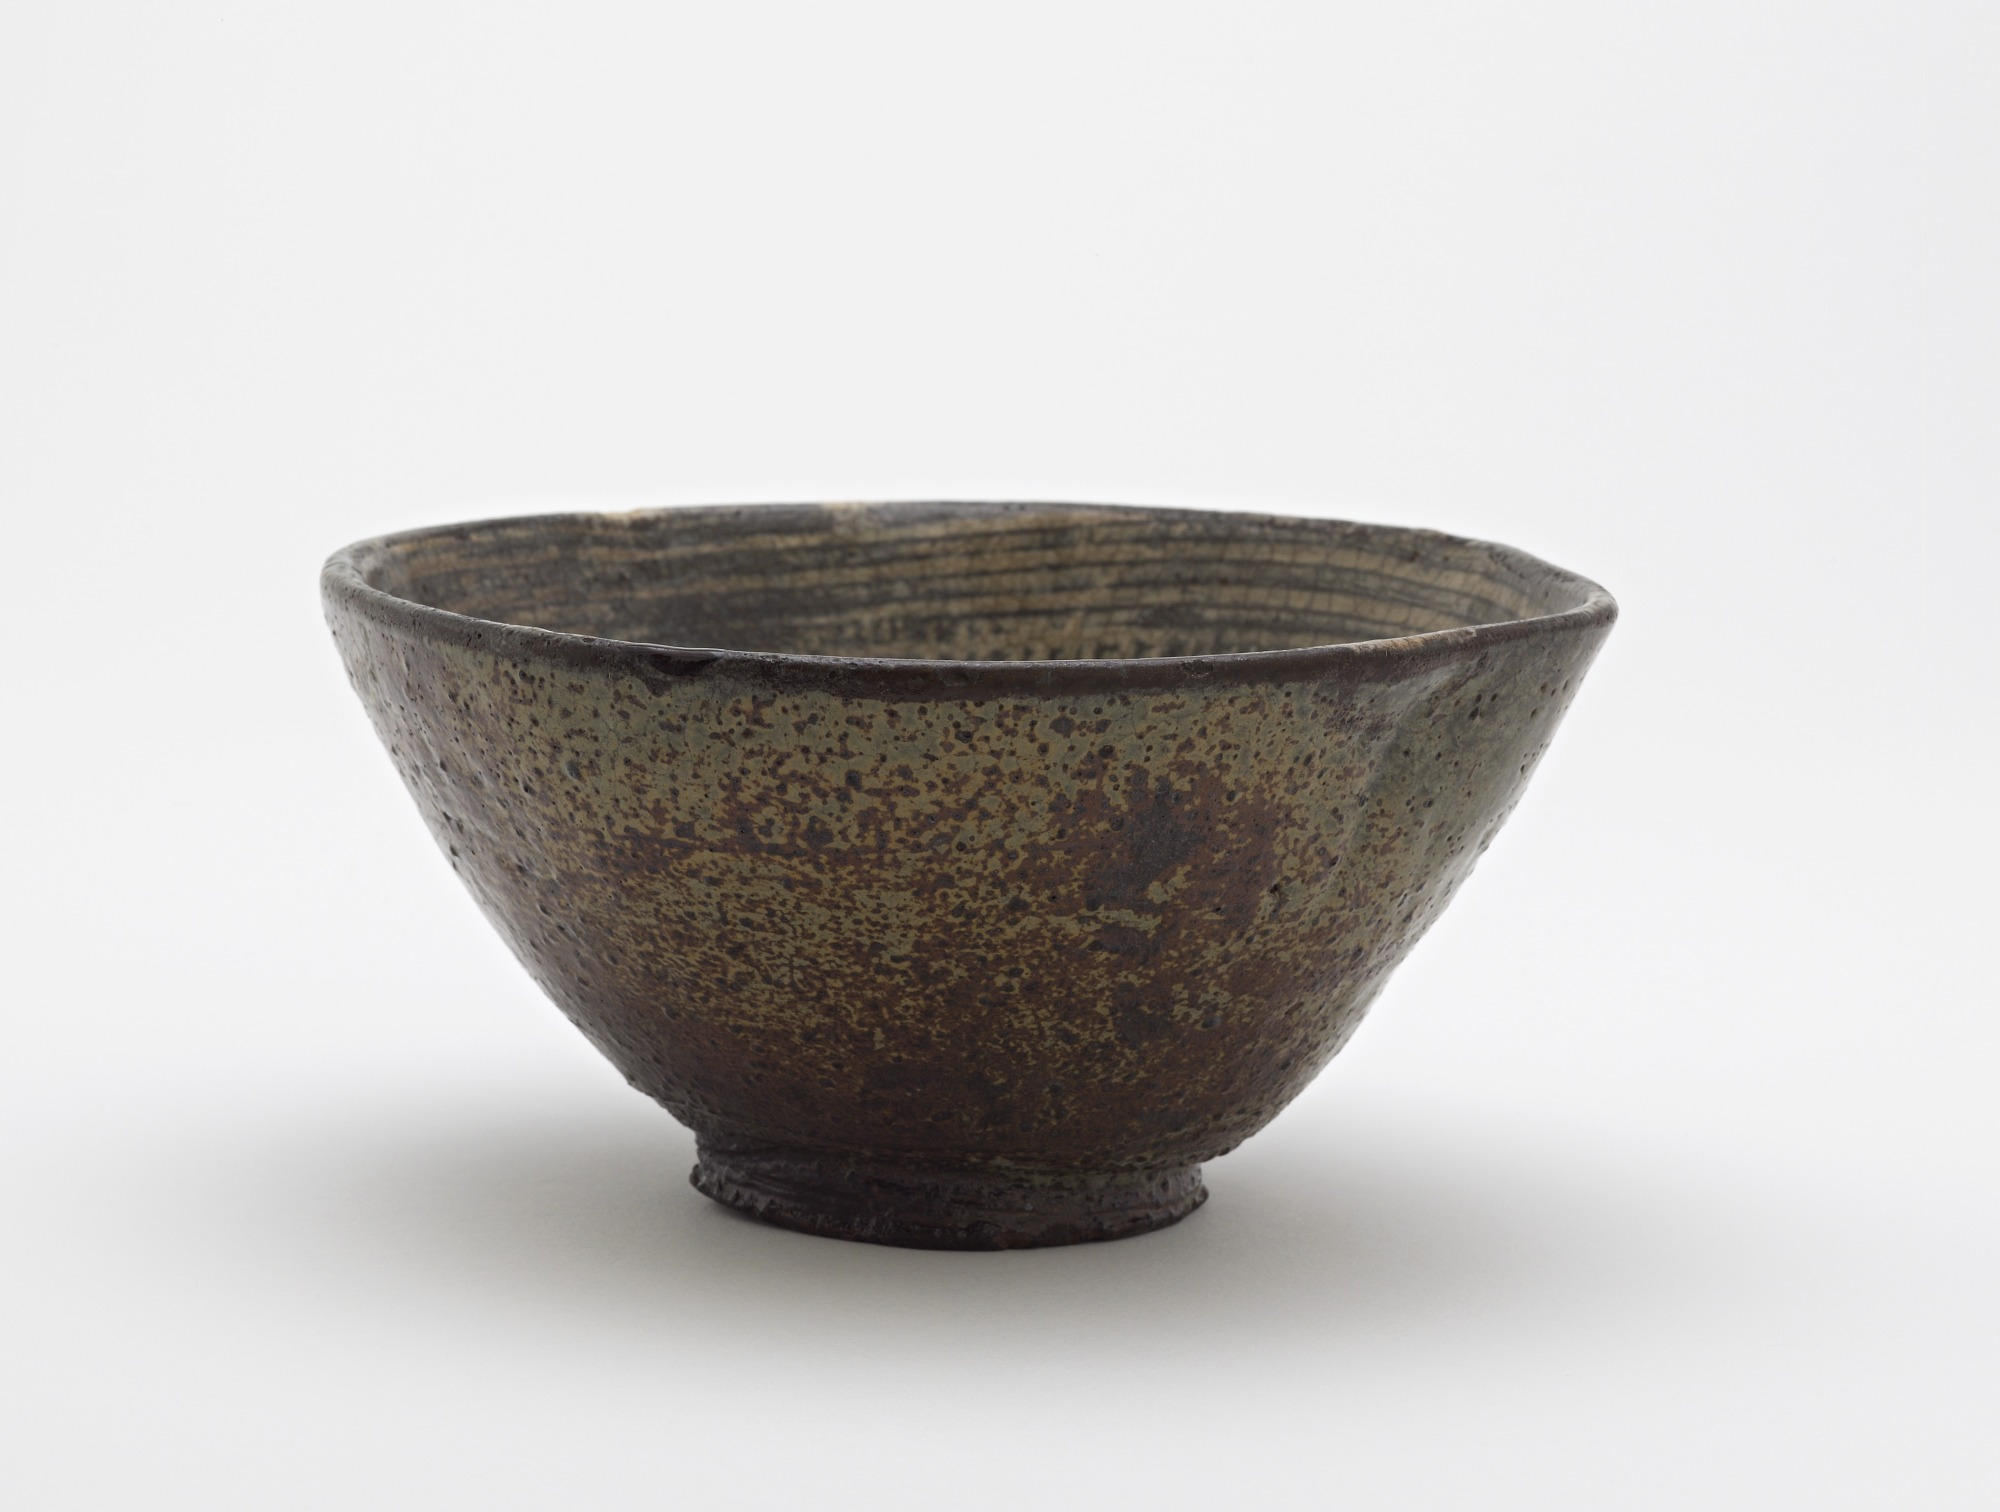 Tea bowl with slip-inlaid decoration, profile